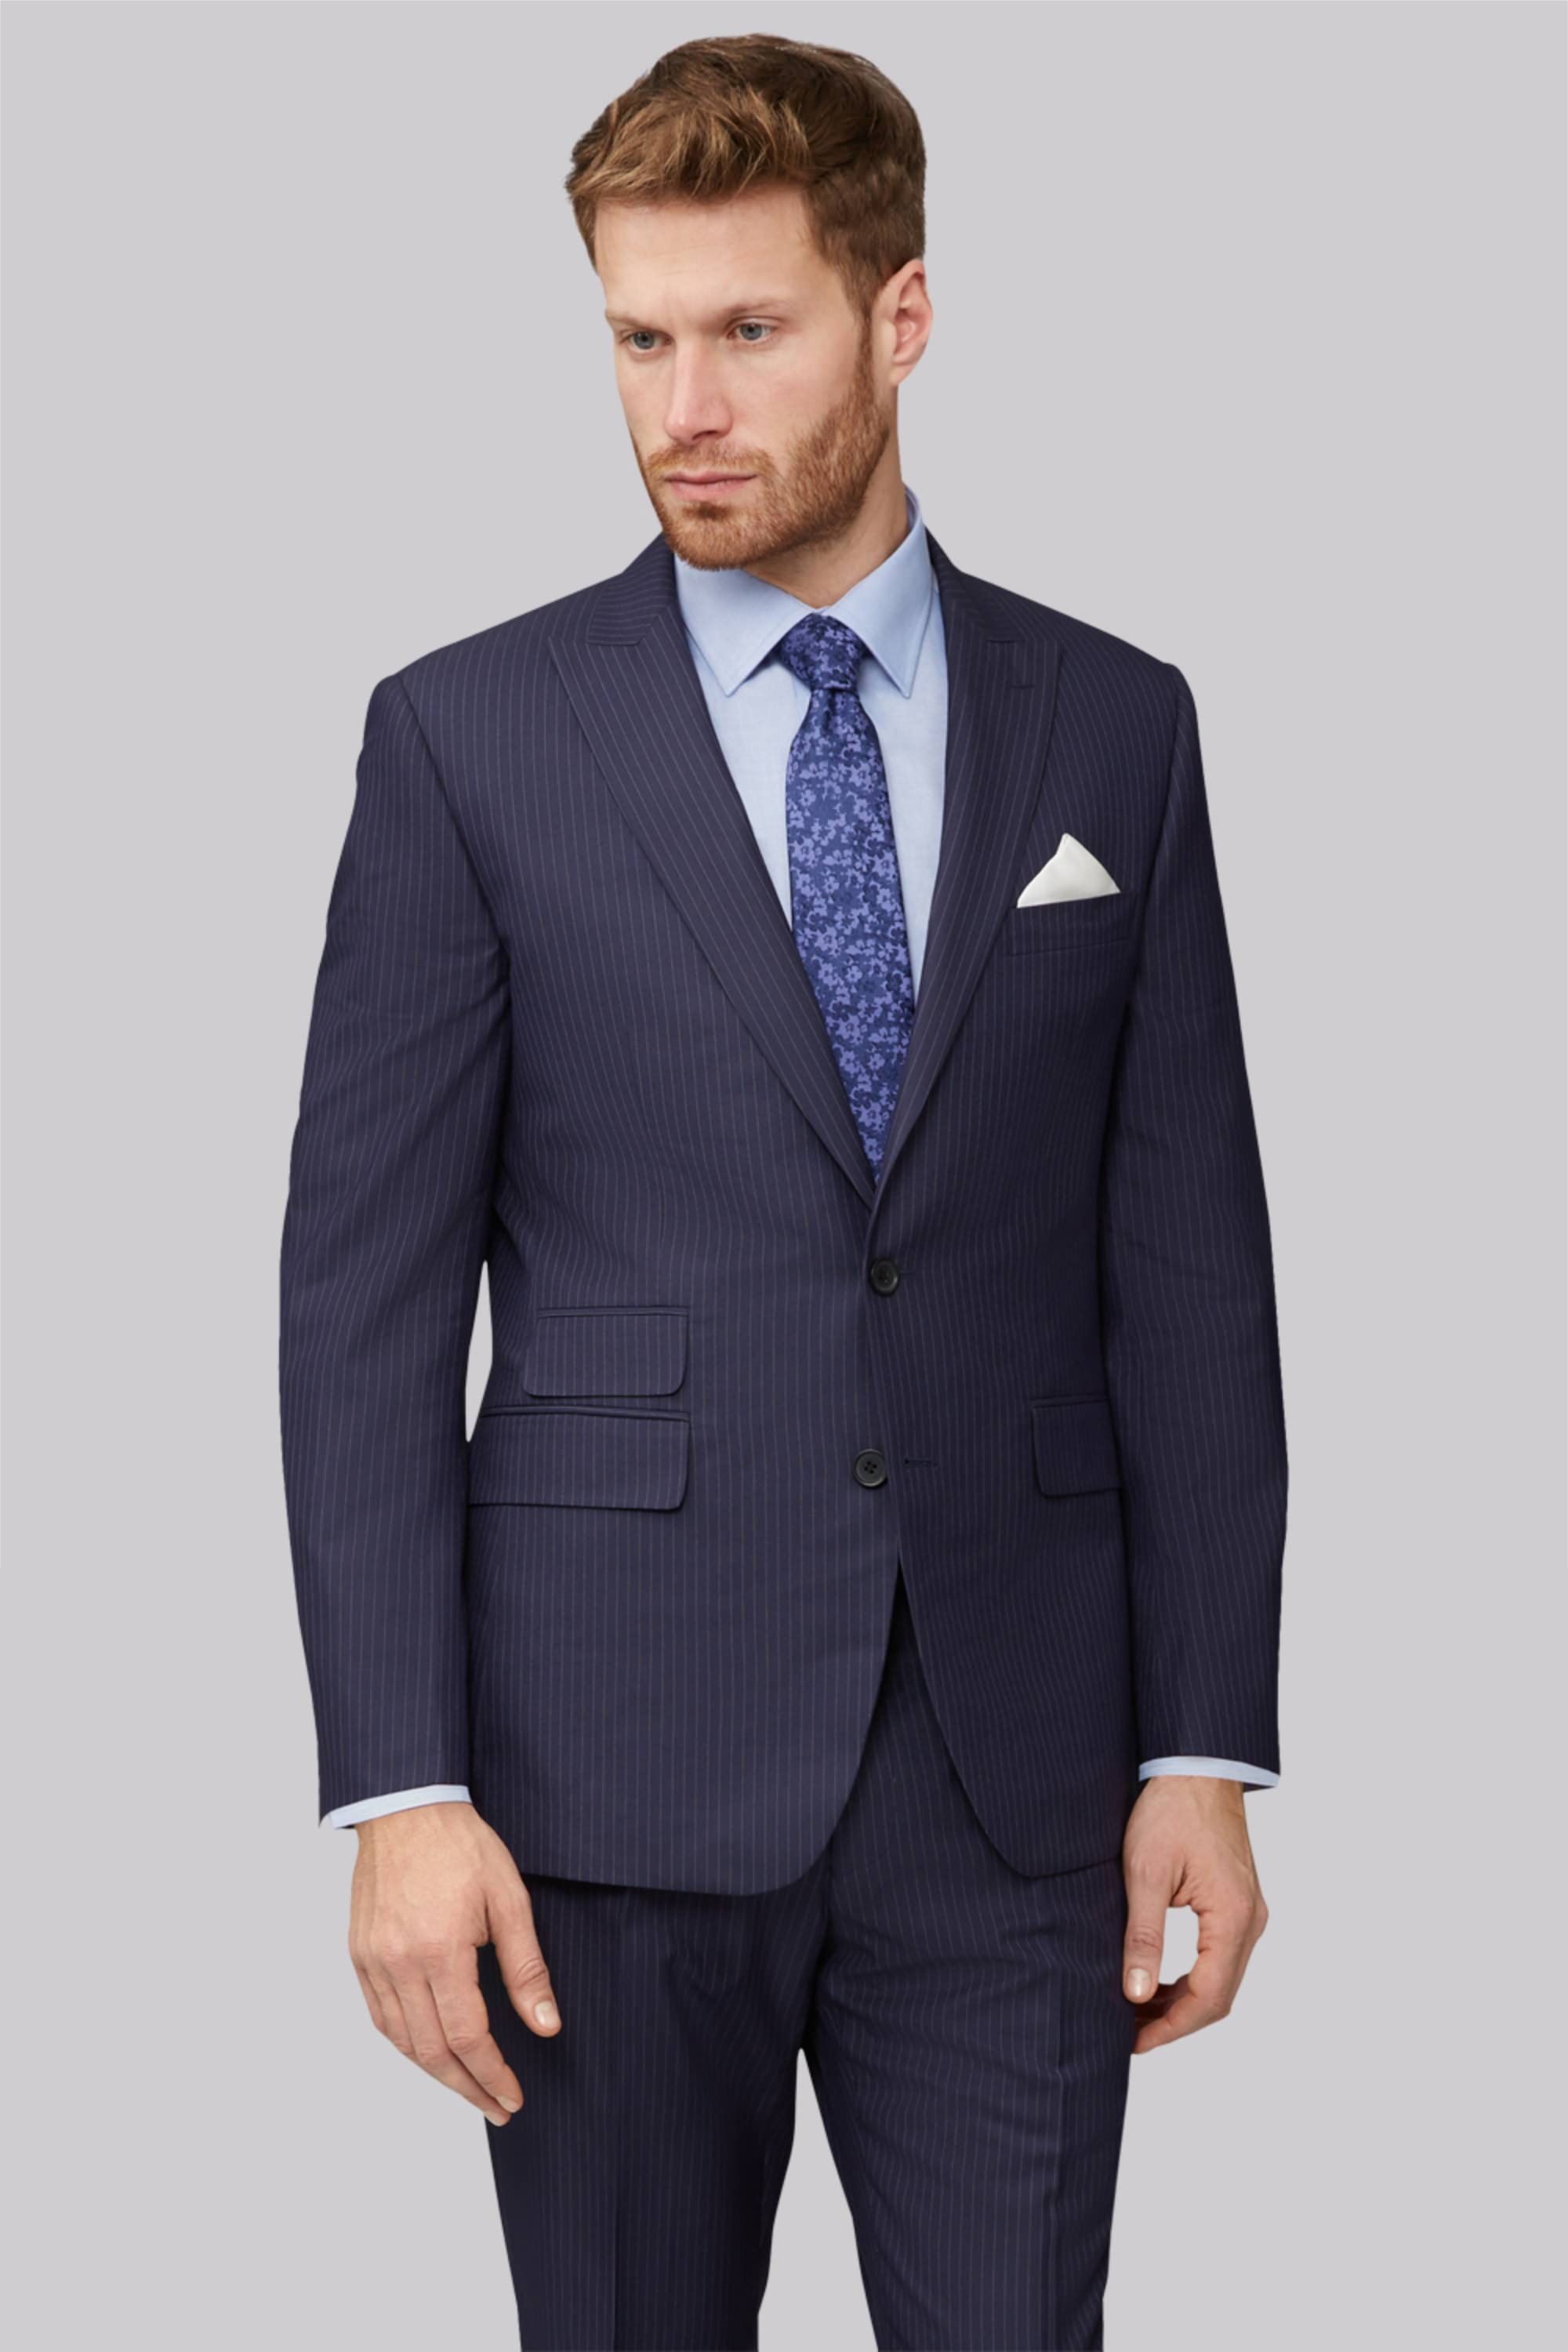 Find a variety of Navy Blue Suit options, including a Men's Navy Blue Suit and a Women's Navy Blue Suit, at Macy's.